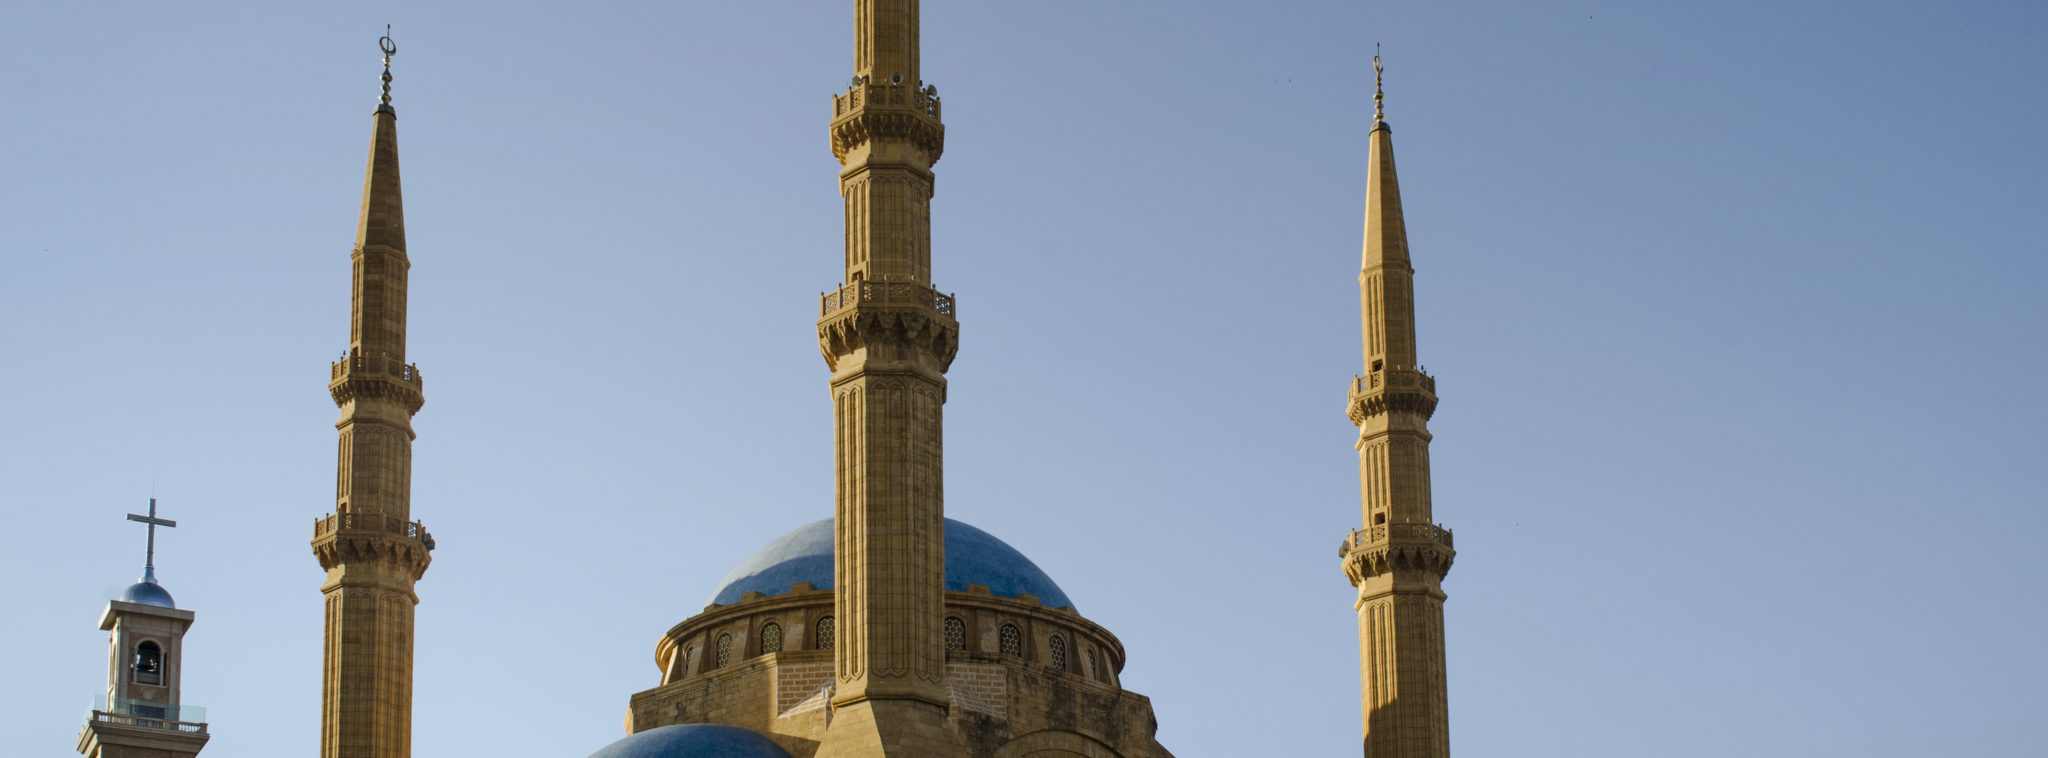 Things-to-do-in-Lebanon-Mohammed-al-Amin-Mosque-Slider